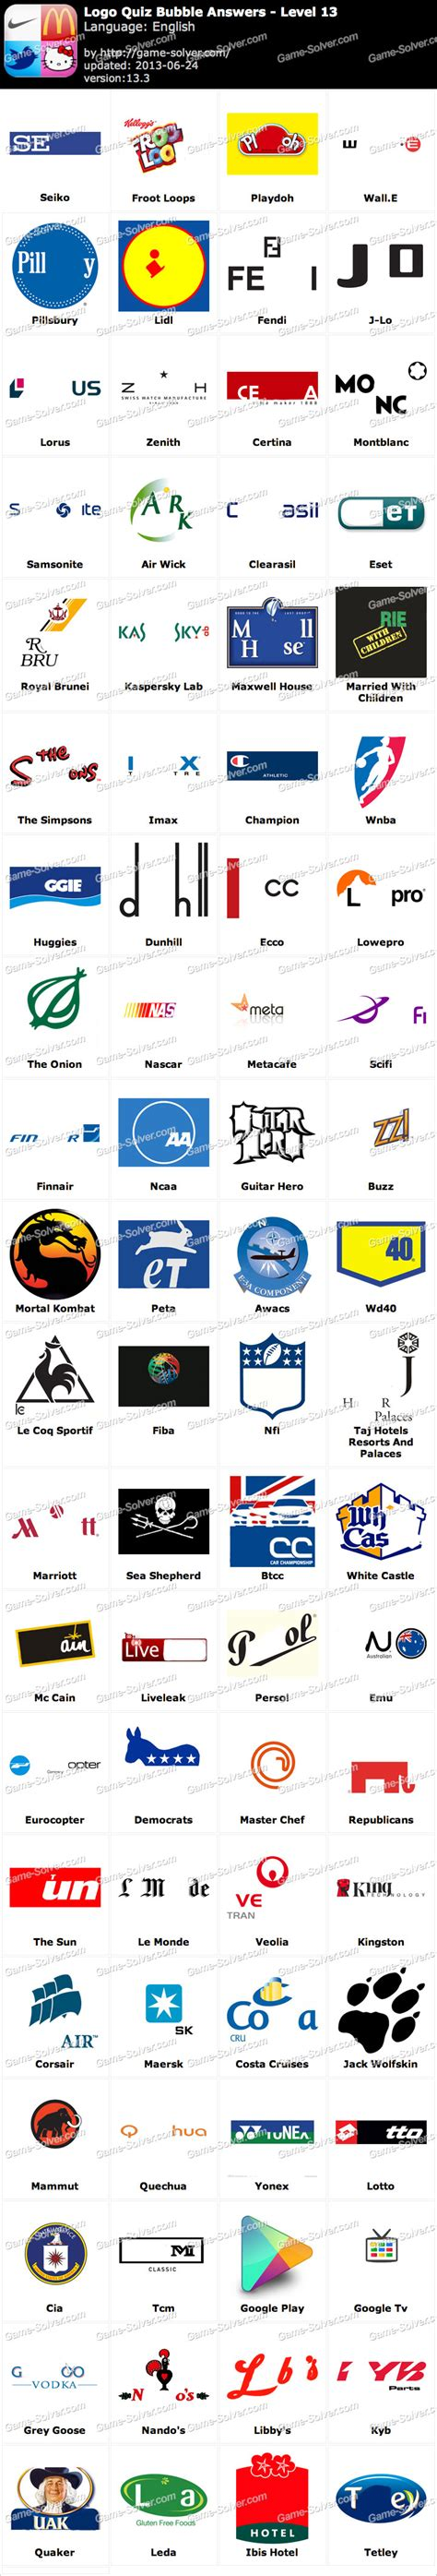 logo quiz answers level 13 clothing and apparel joy logo quiz by bubble answers level 13 game solver